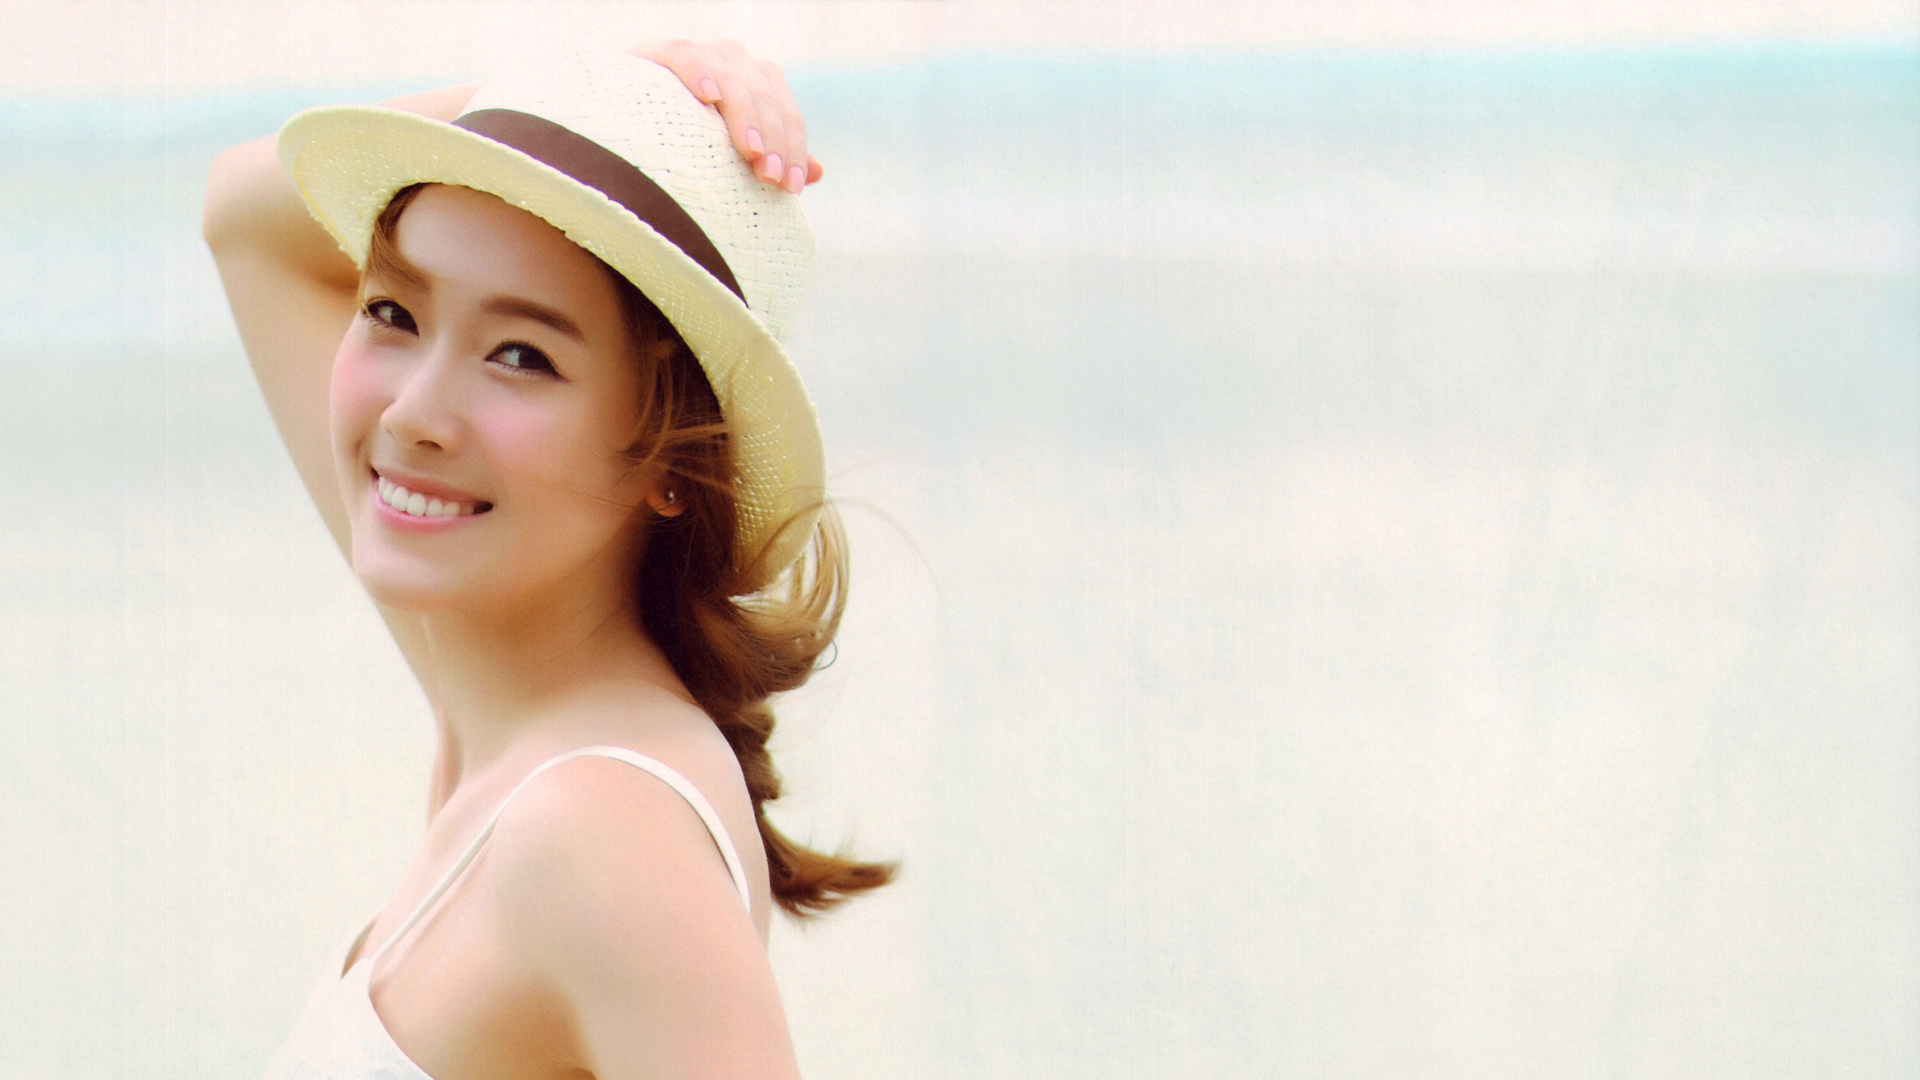 Jessica SNSD images Jessica 3 HD wallpaper and background photos 1920x1080